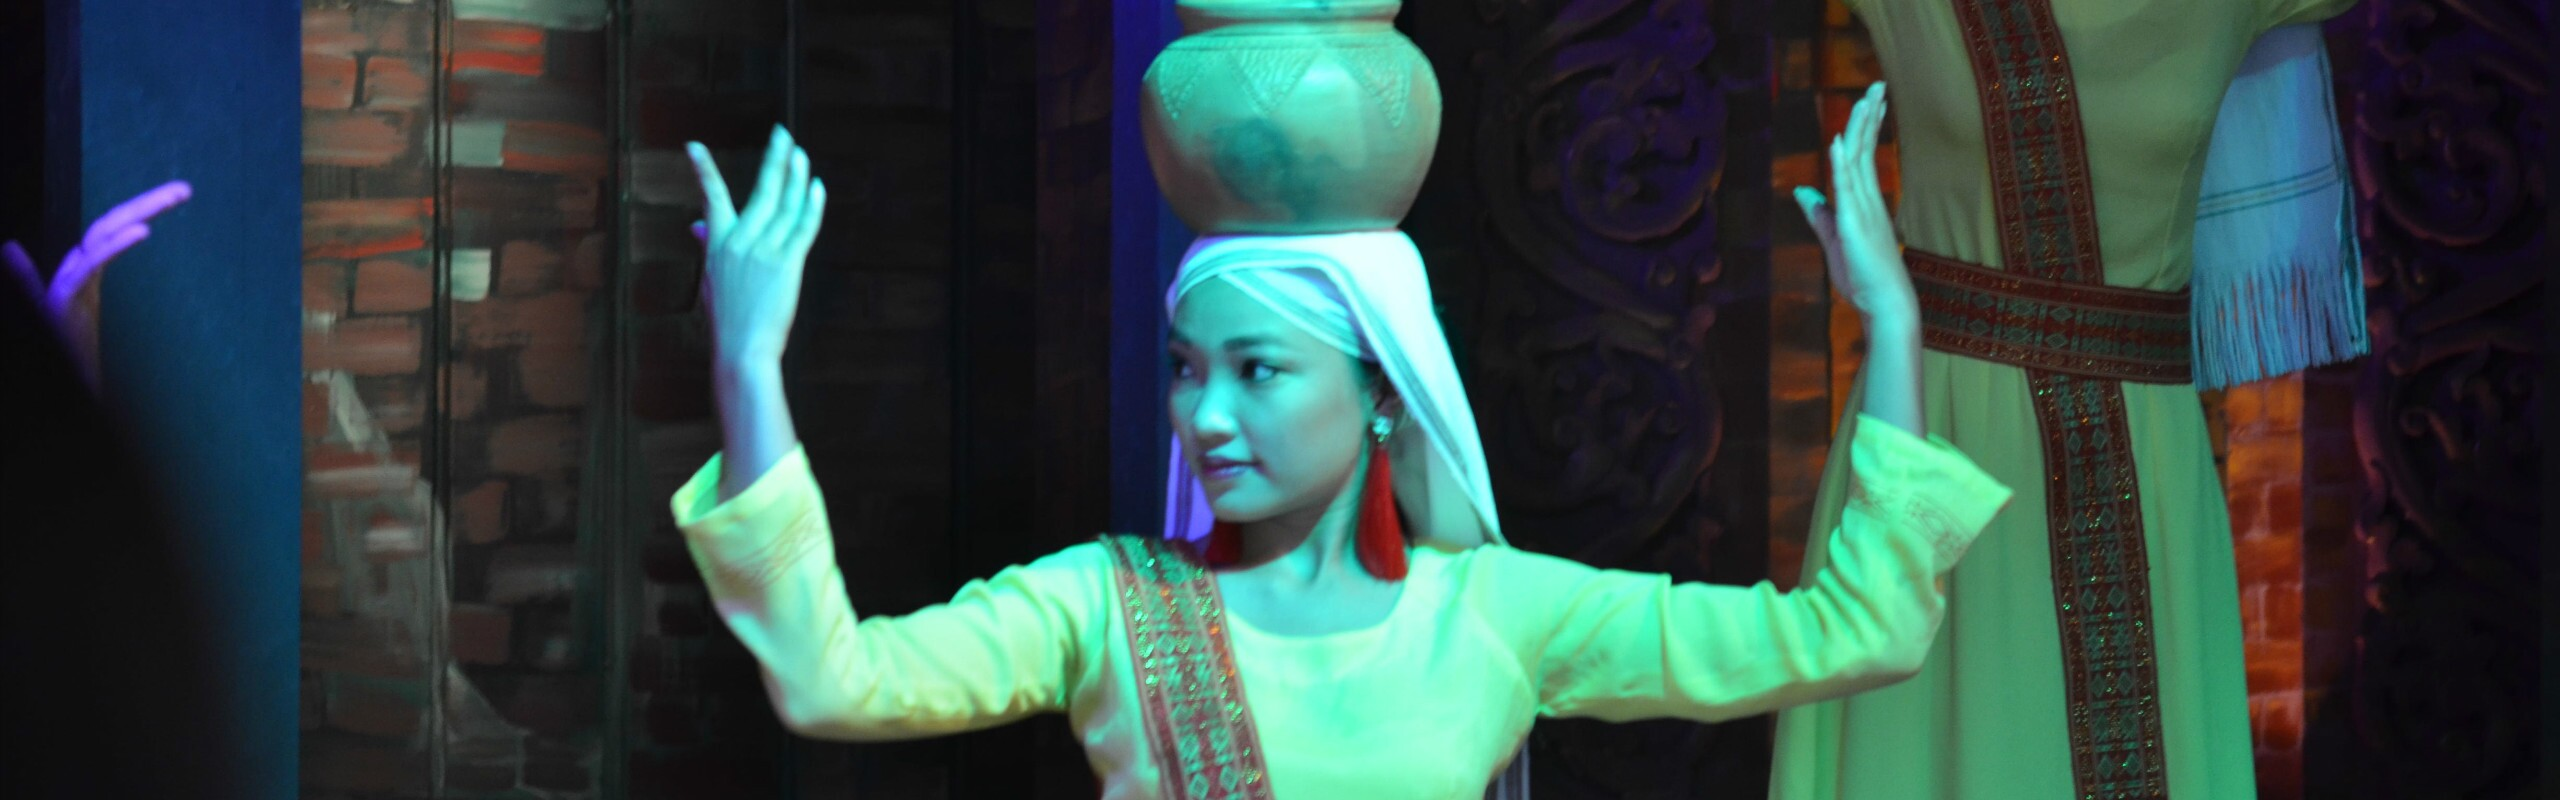 Performing Arts in Vietnam - Water Puppetry